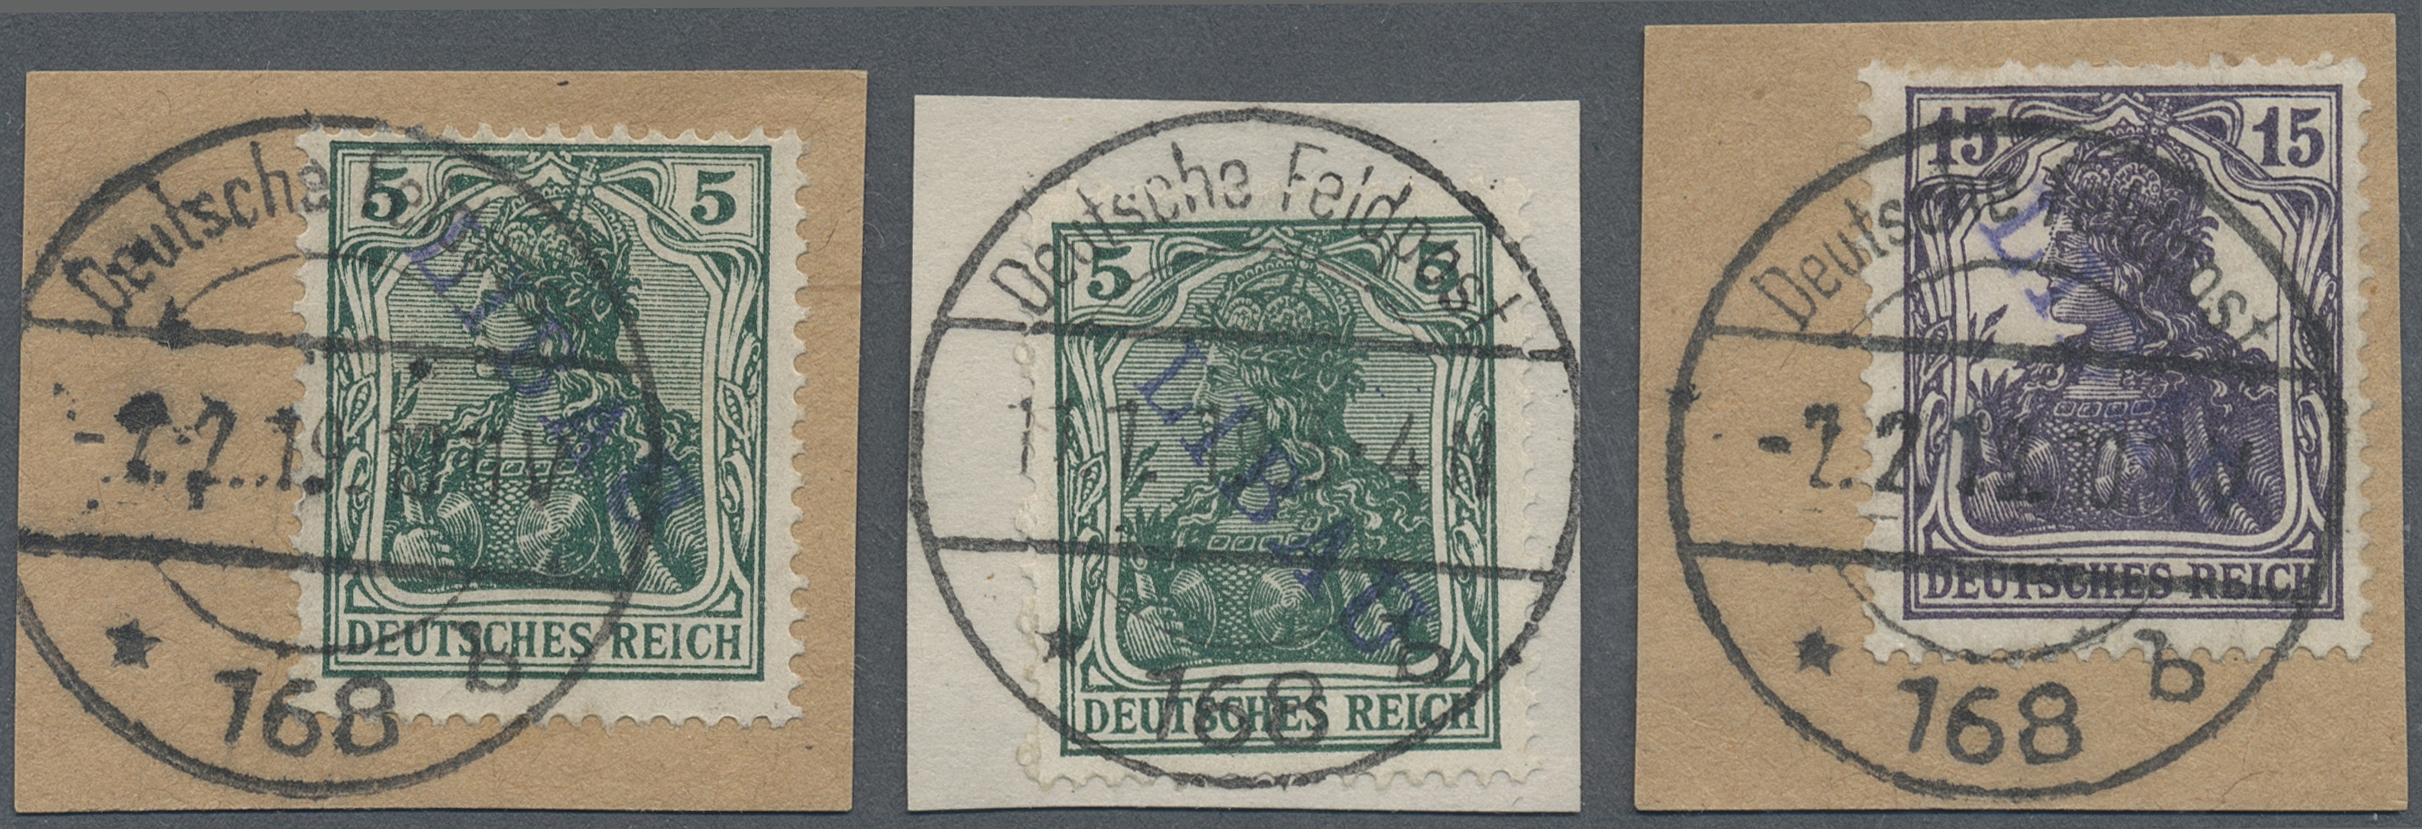 Lot 18857 - Deutsche Besetzung I. WK: Postgebiet Ober. Ost - Libau  -  Auktionshaus Christoph Gärtner GmbH & Co. KG Auction #40 Germany, Picture Post Cards, Collections Overseas, Thematics